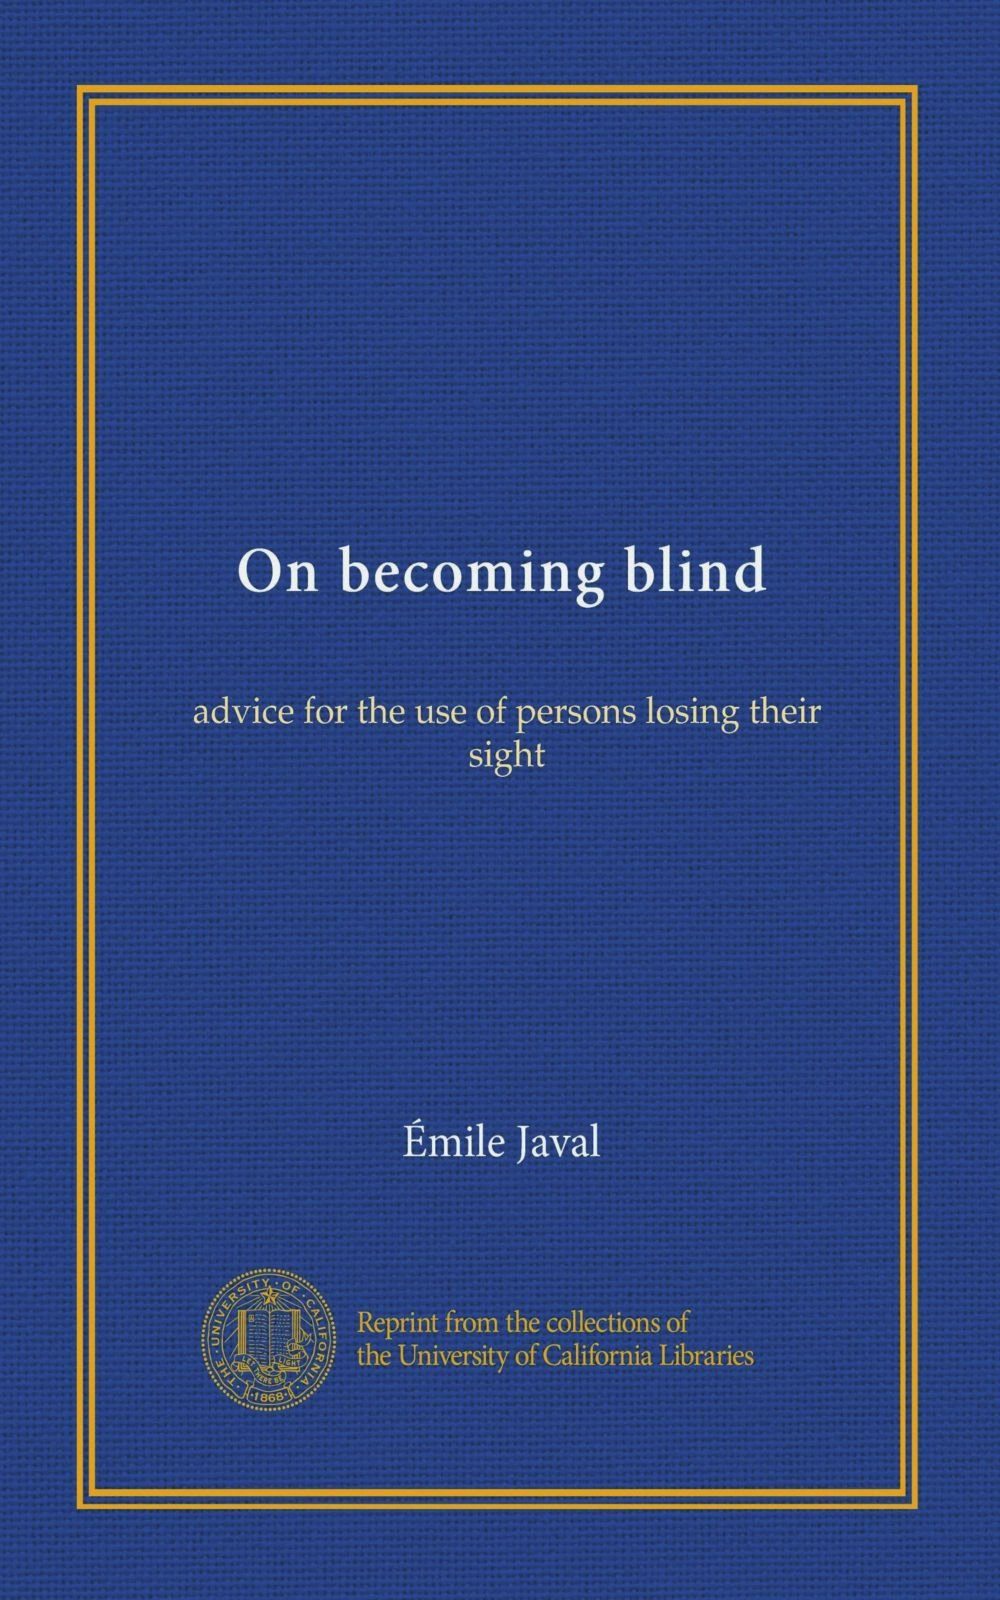 On becoming blind: advice for the use of persons losing their sight PDF